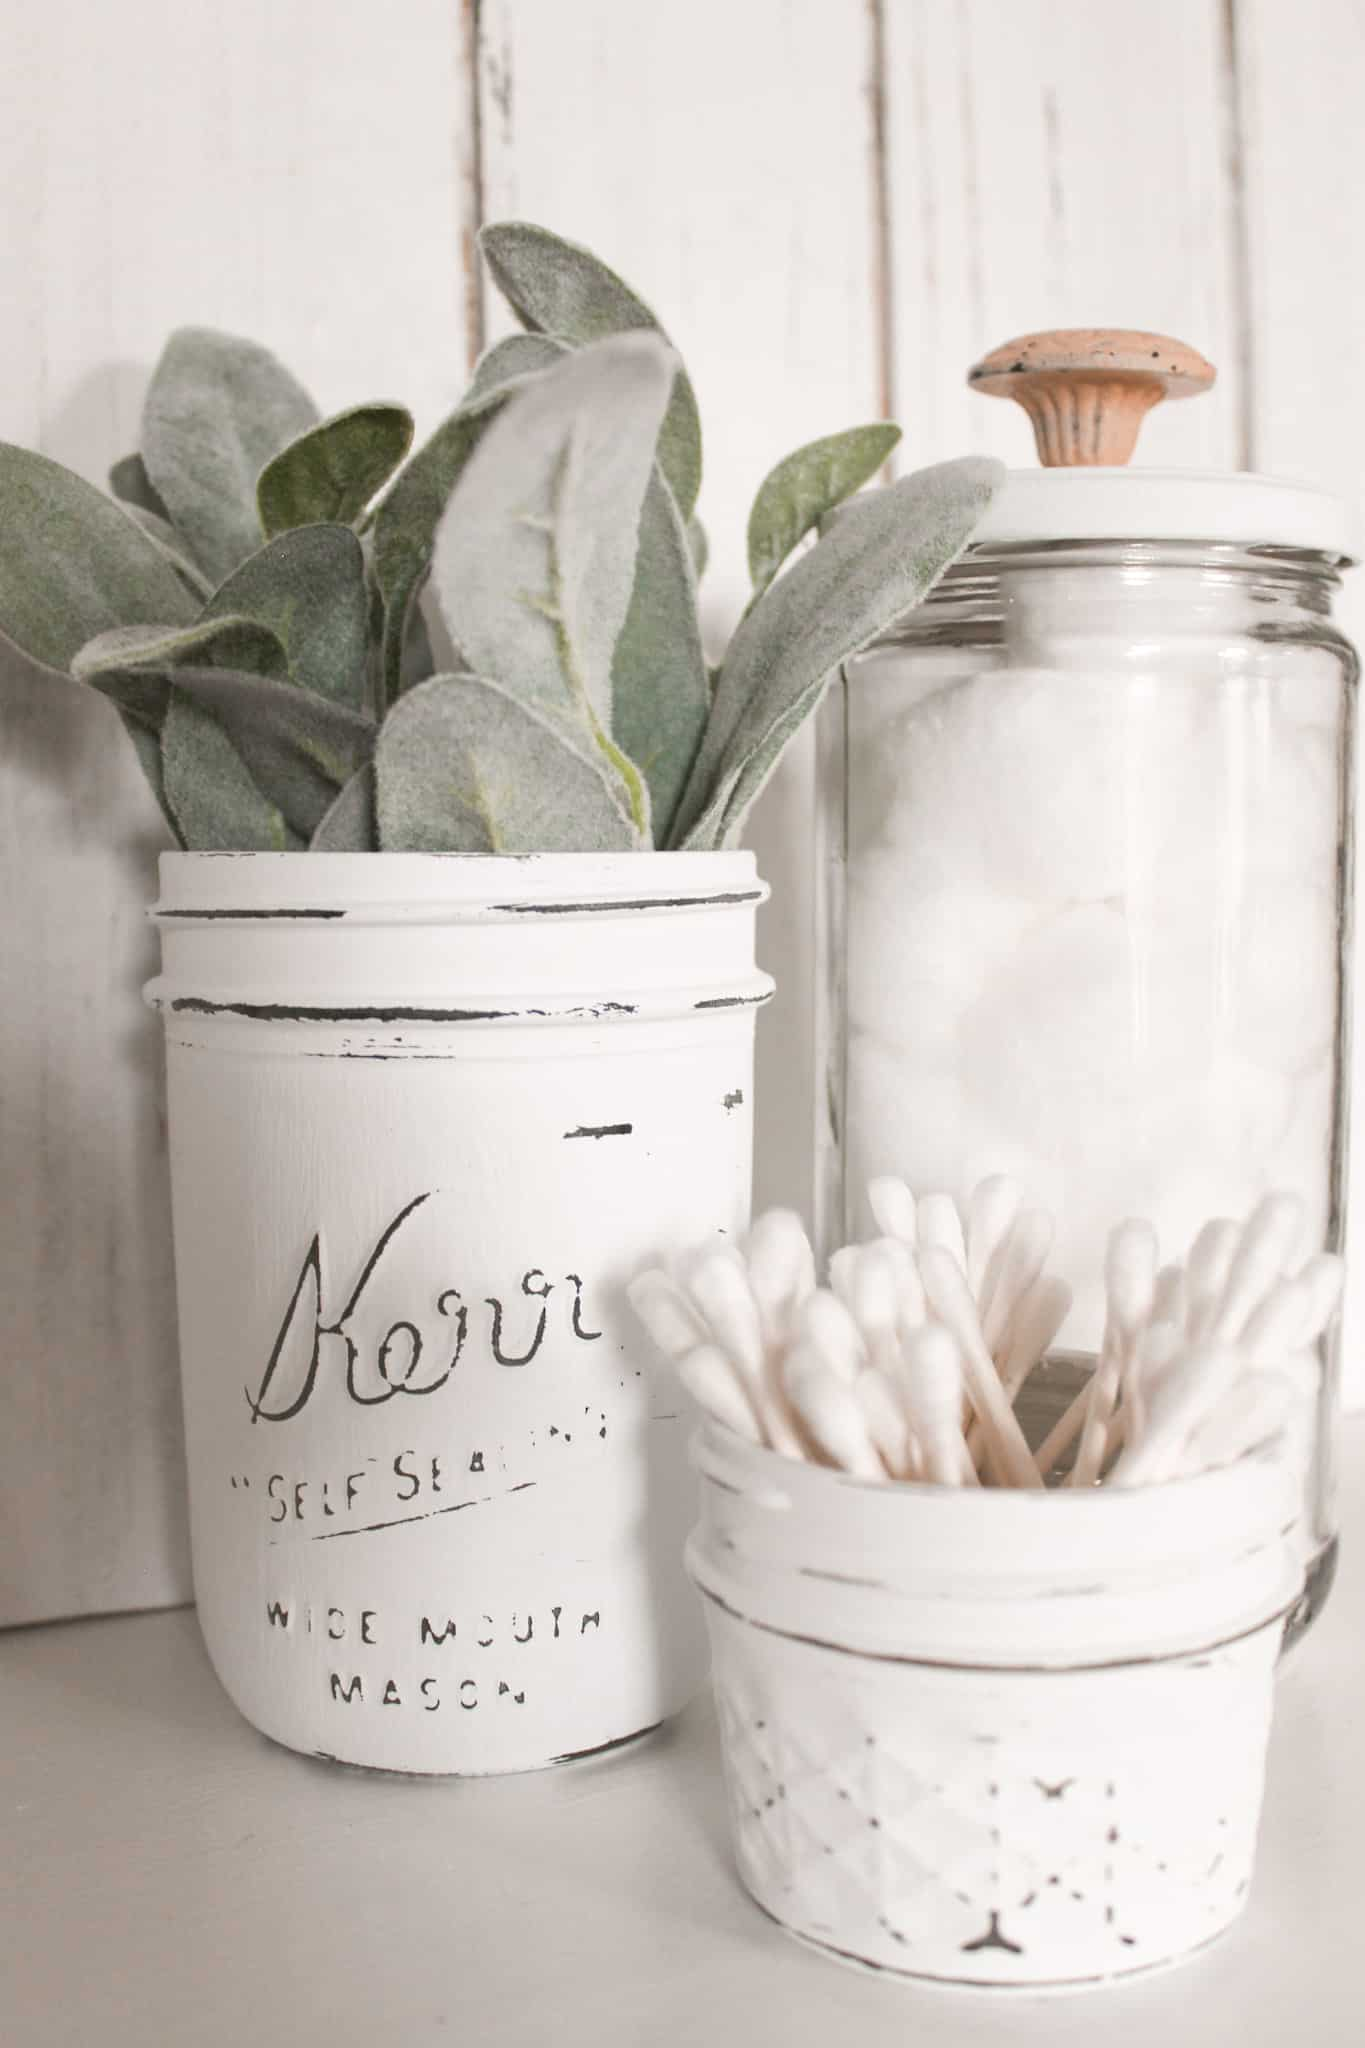 Repurposed Glass Jar Organizers for Bathroom Essentials